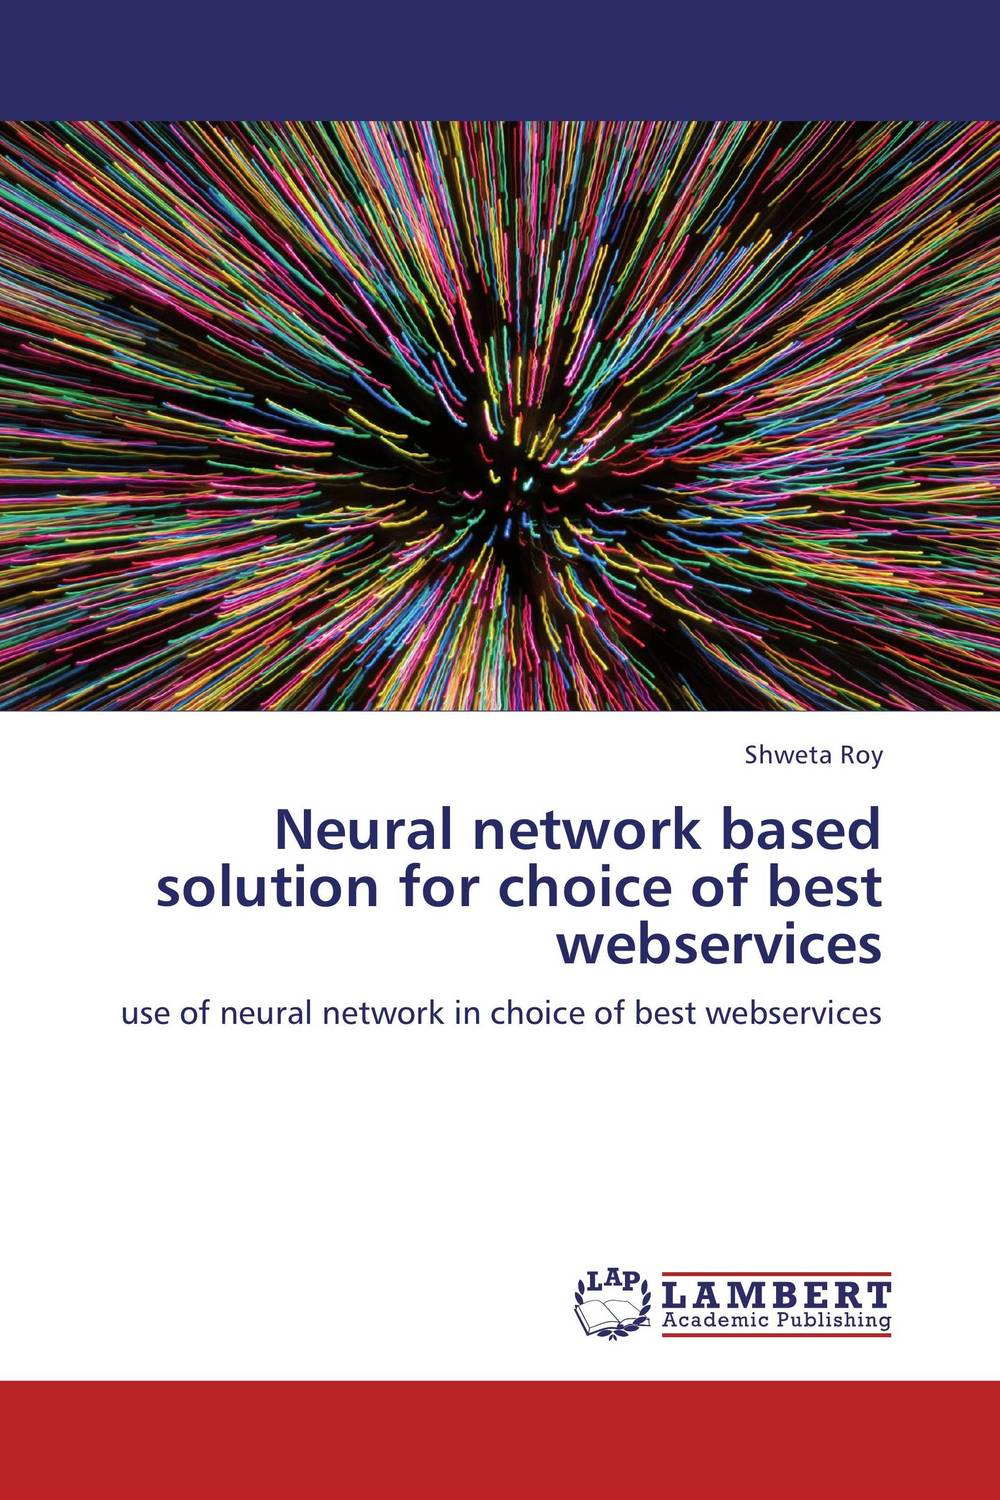 Neural network based solution for choice of best webservices overview of web based business